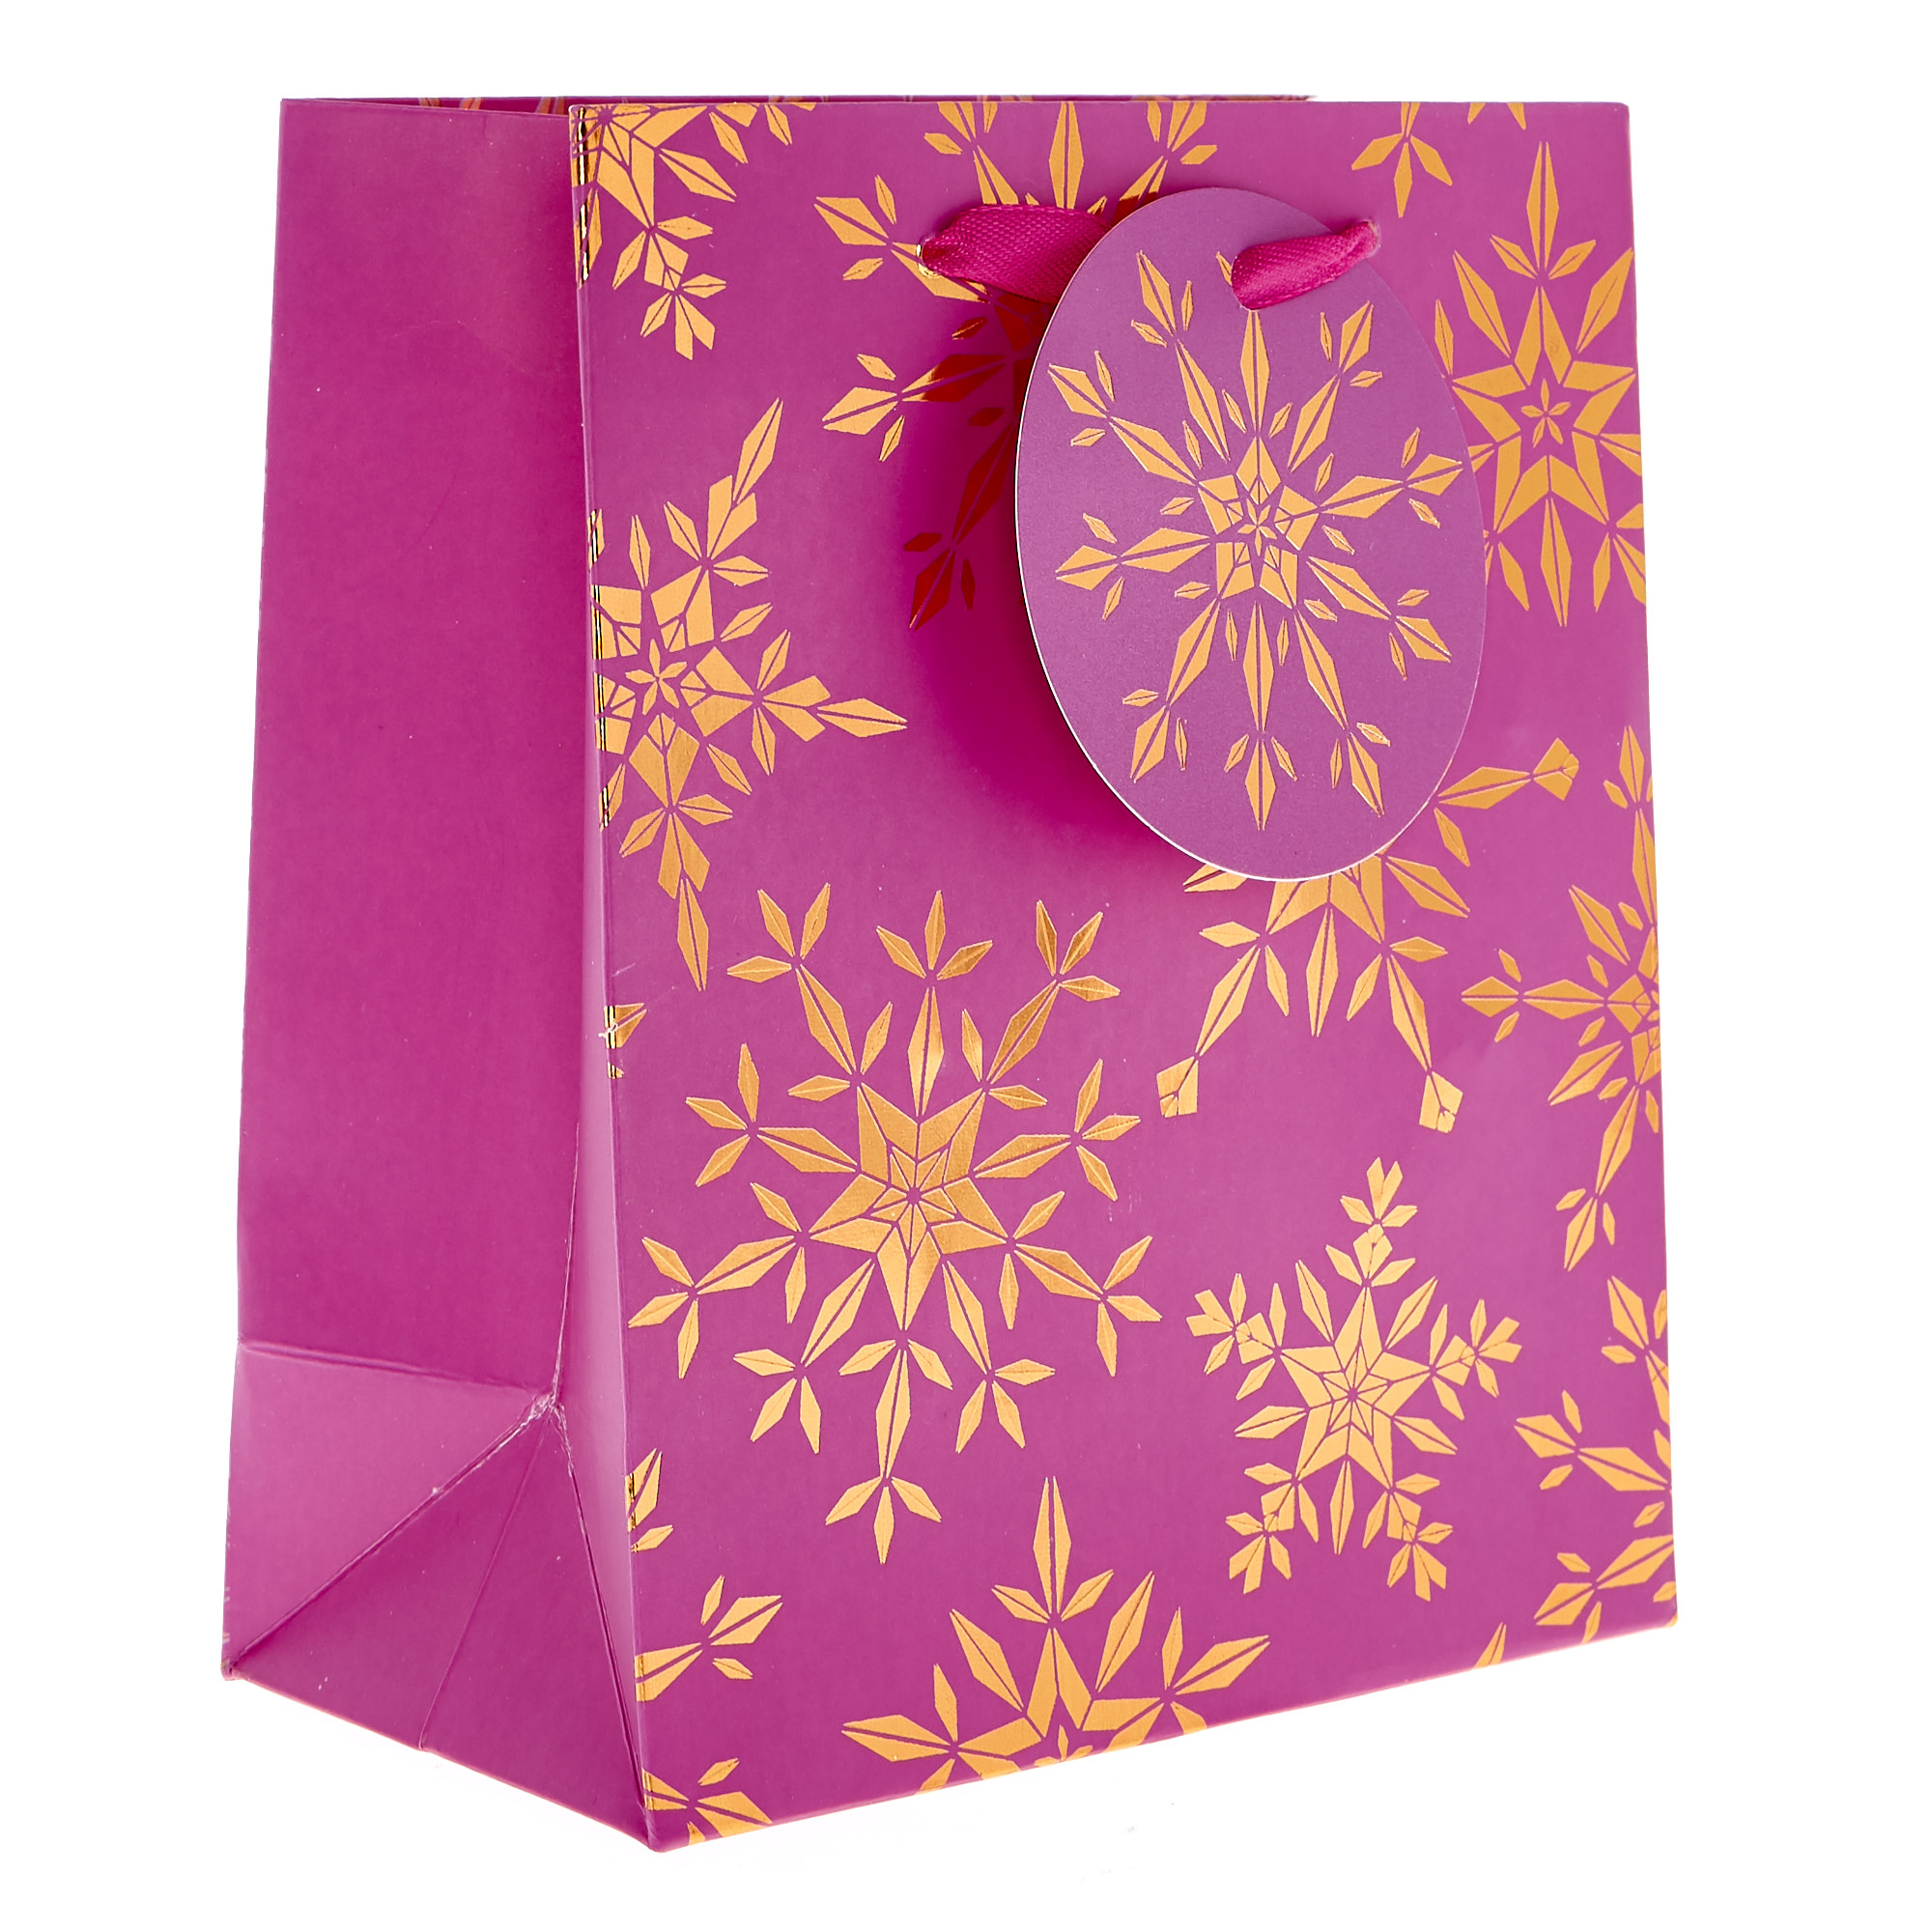 Miniature Portrait Pink & Bronze Snowflakes Christmas Gift Bag